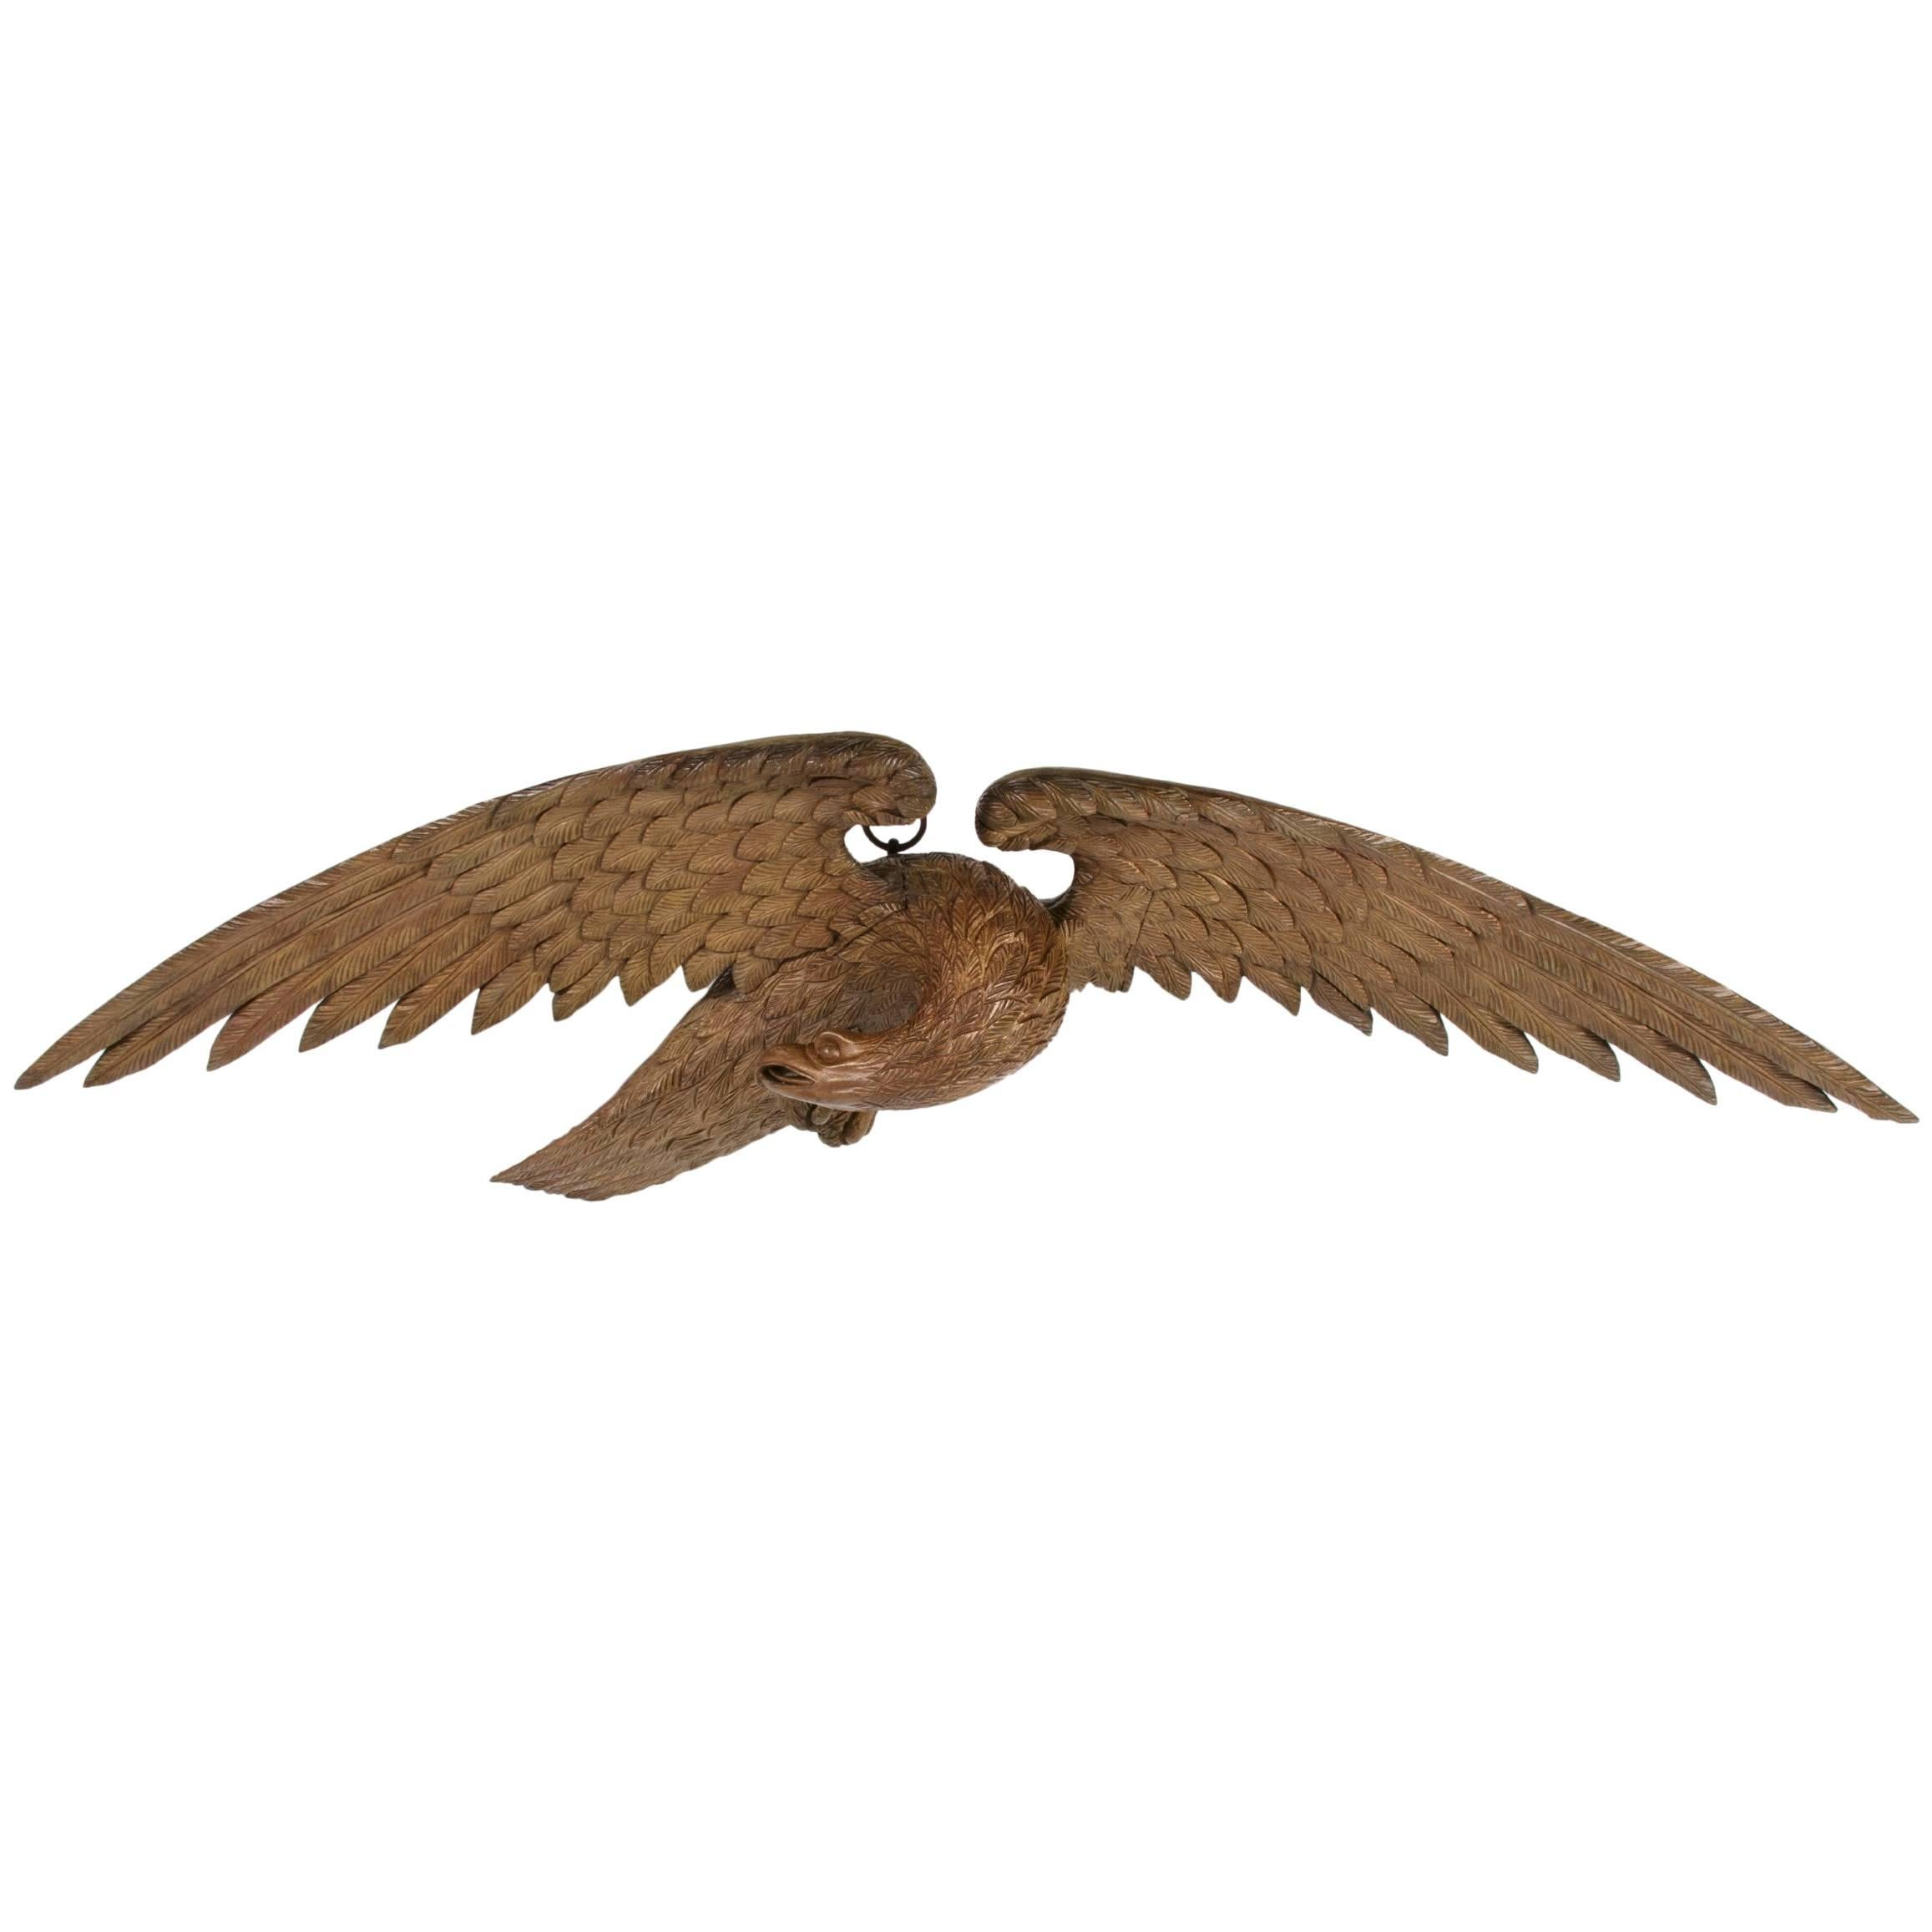 Carved American Eagle with Exceptional Form, Craftsmanship and Scale